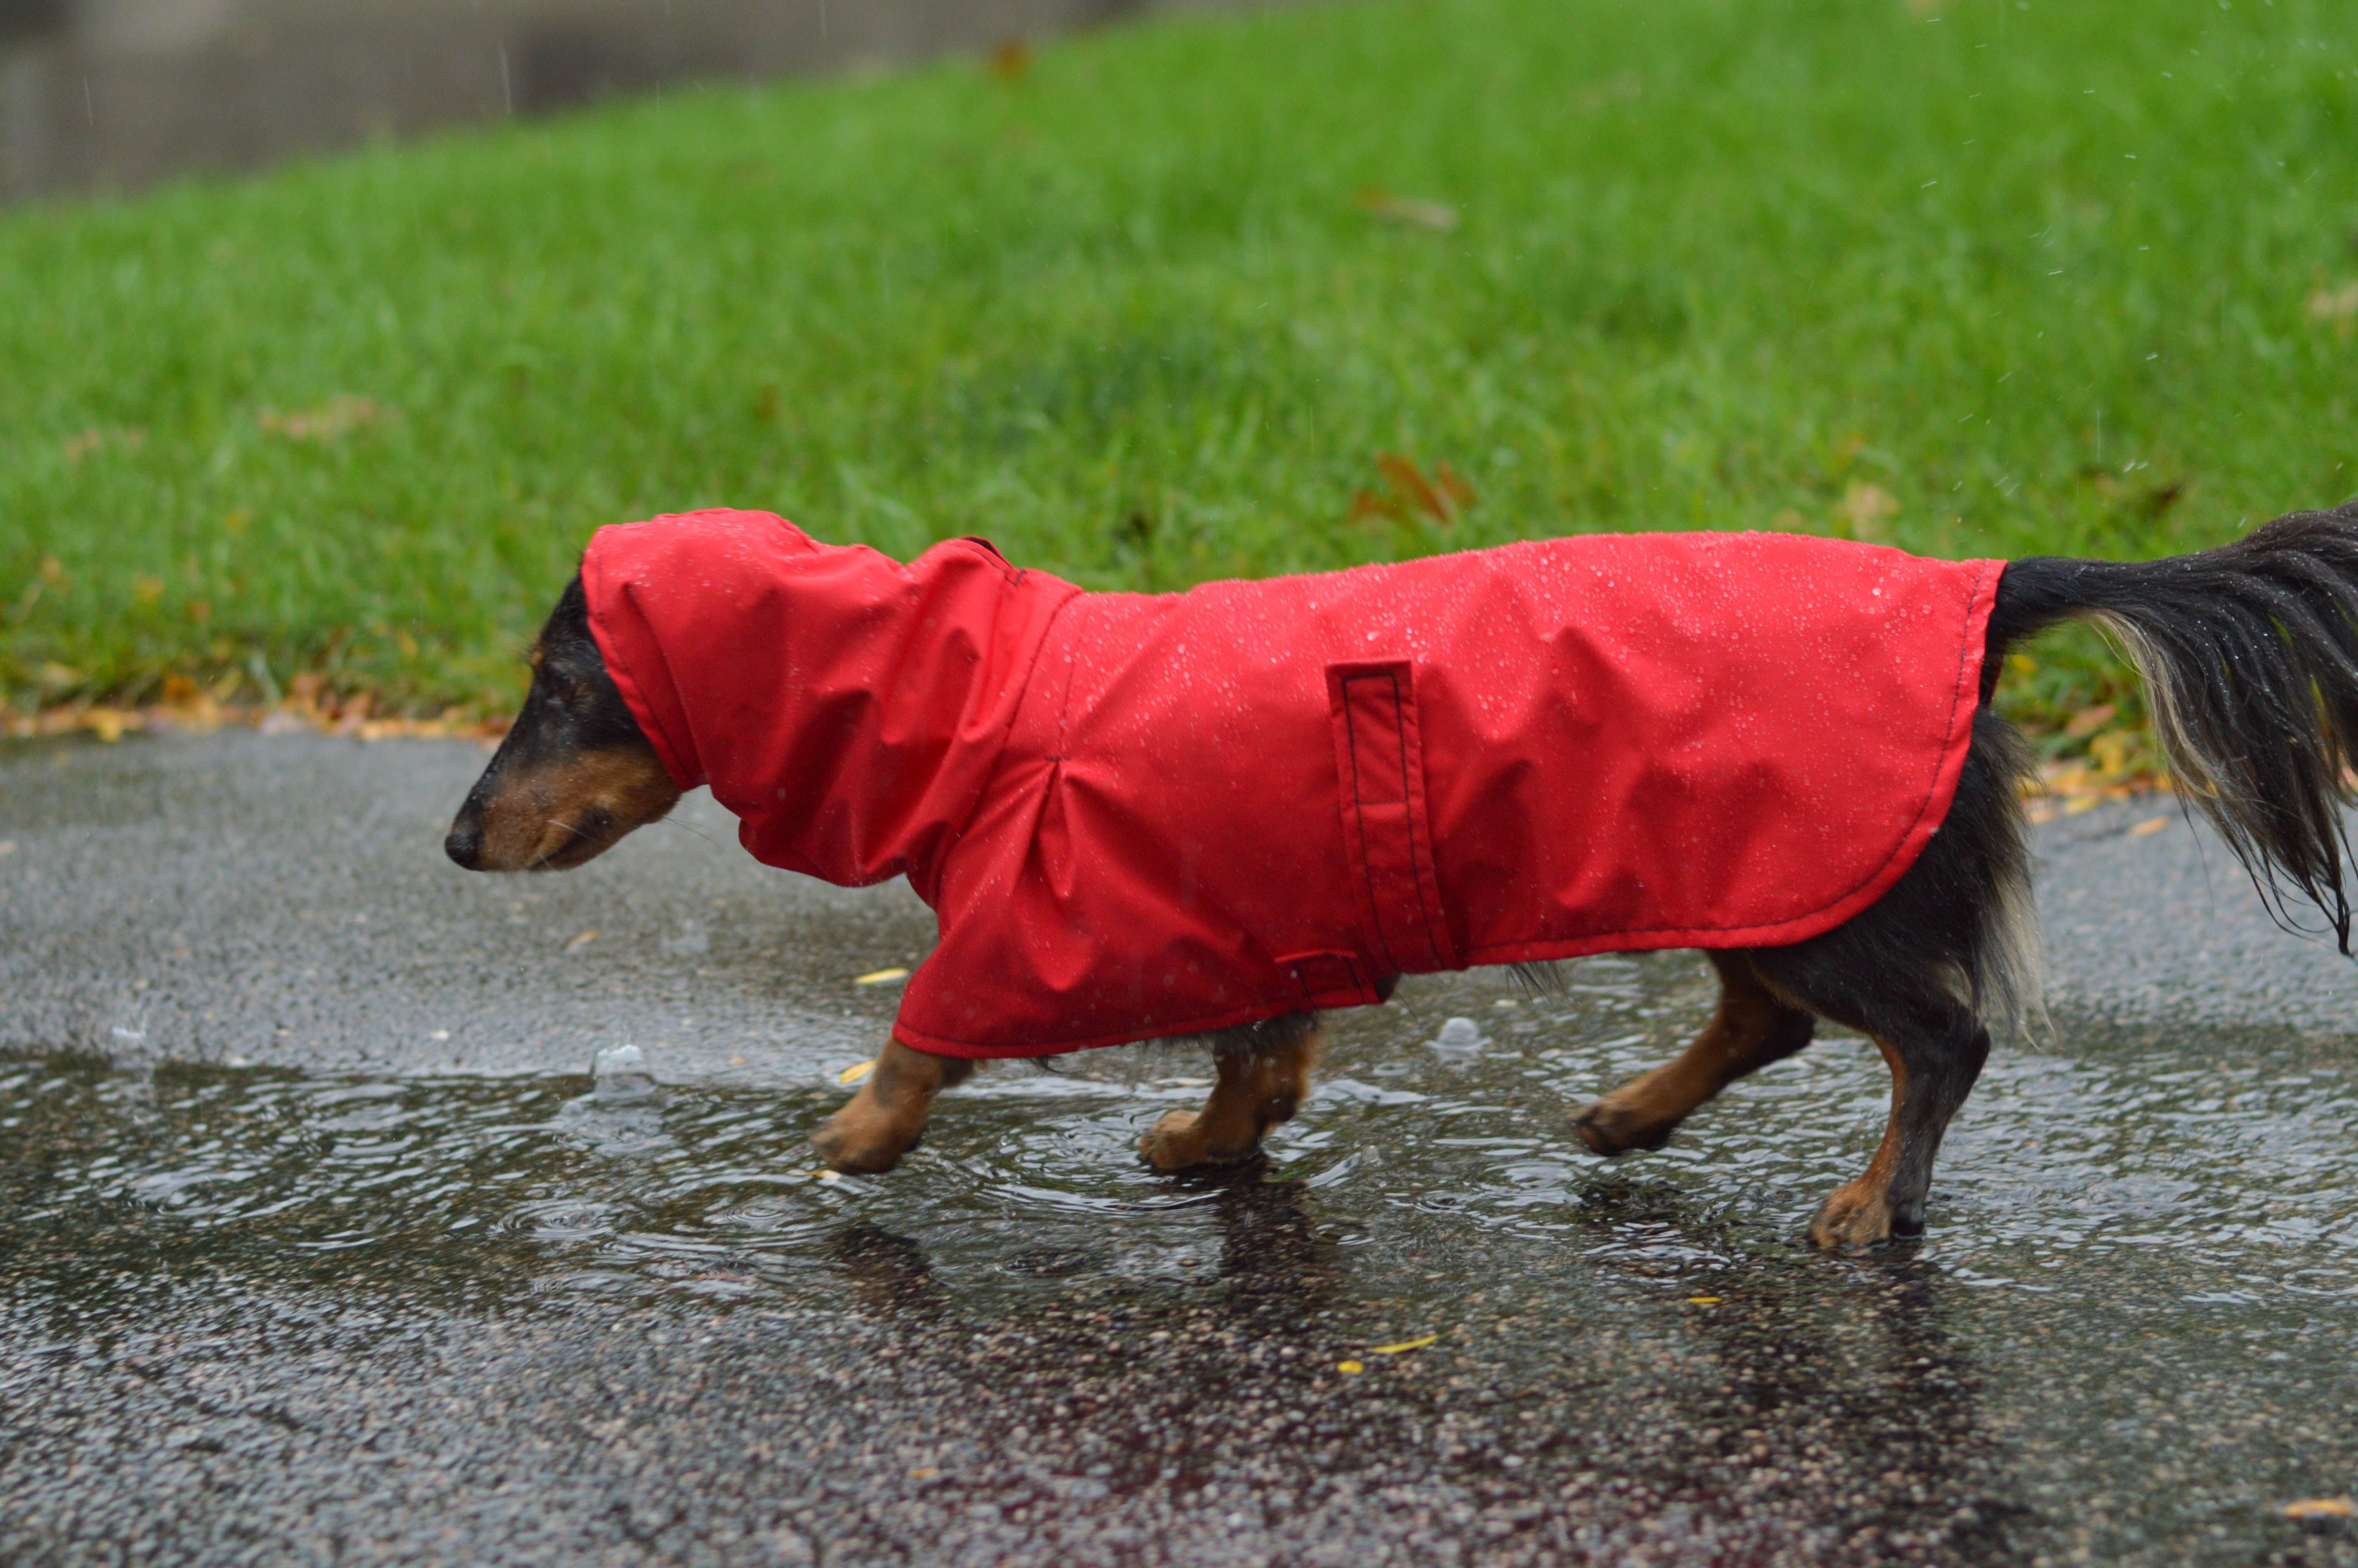 Titan The Dachshund Loves Wearing His Red Rain Coat During Autumn